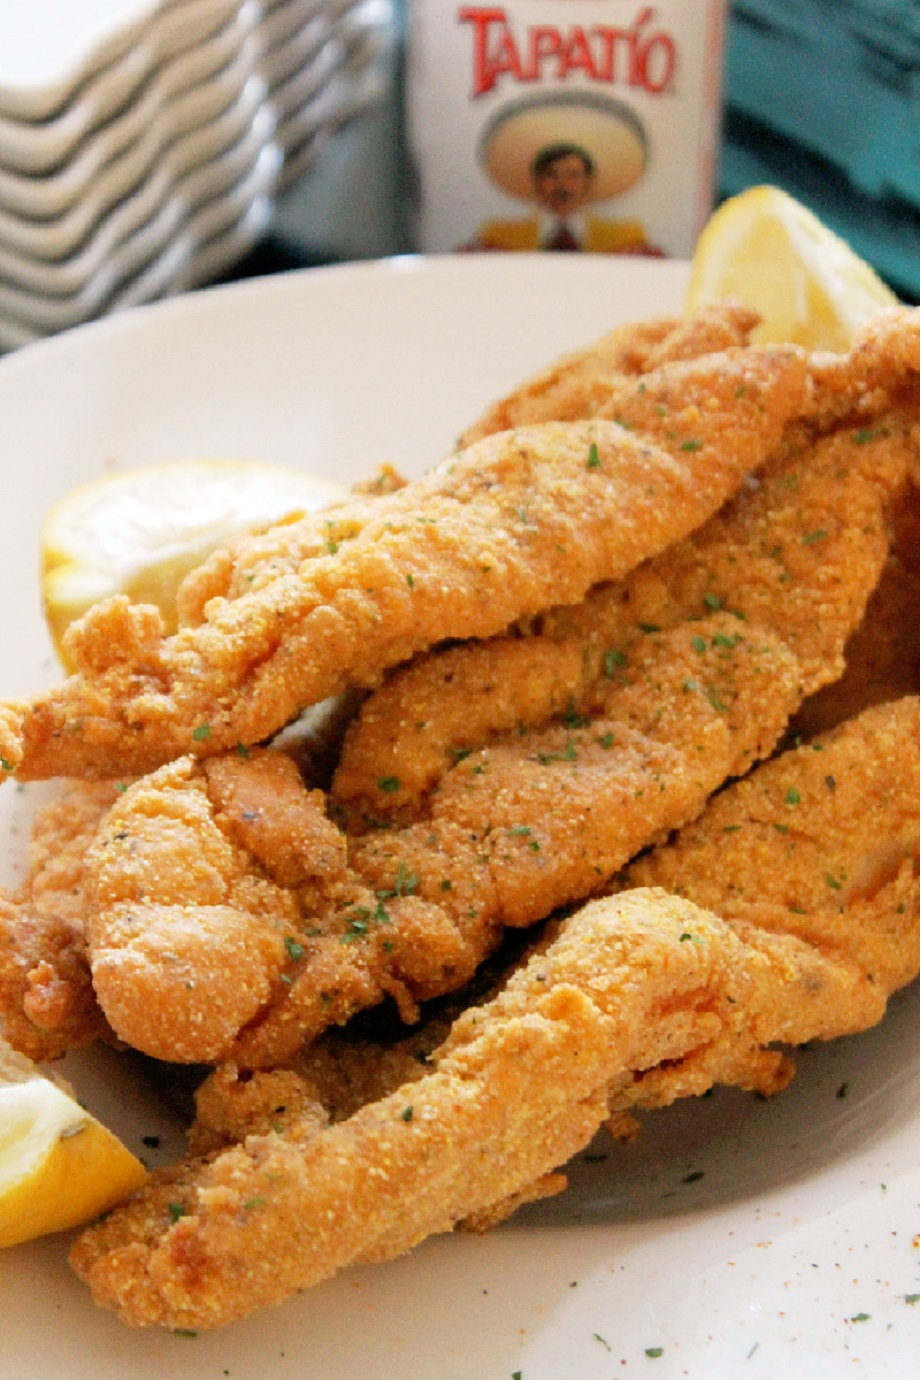 ... beautiful Sunday which means it's the perfect day to fry fish